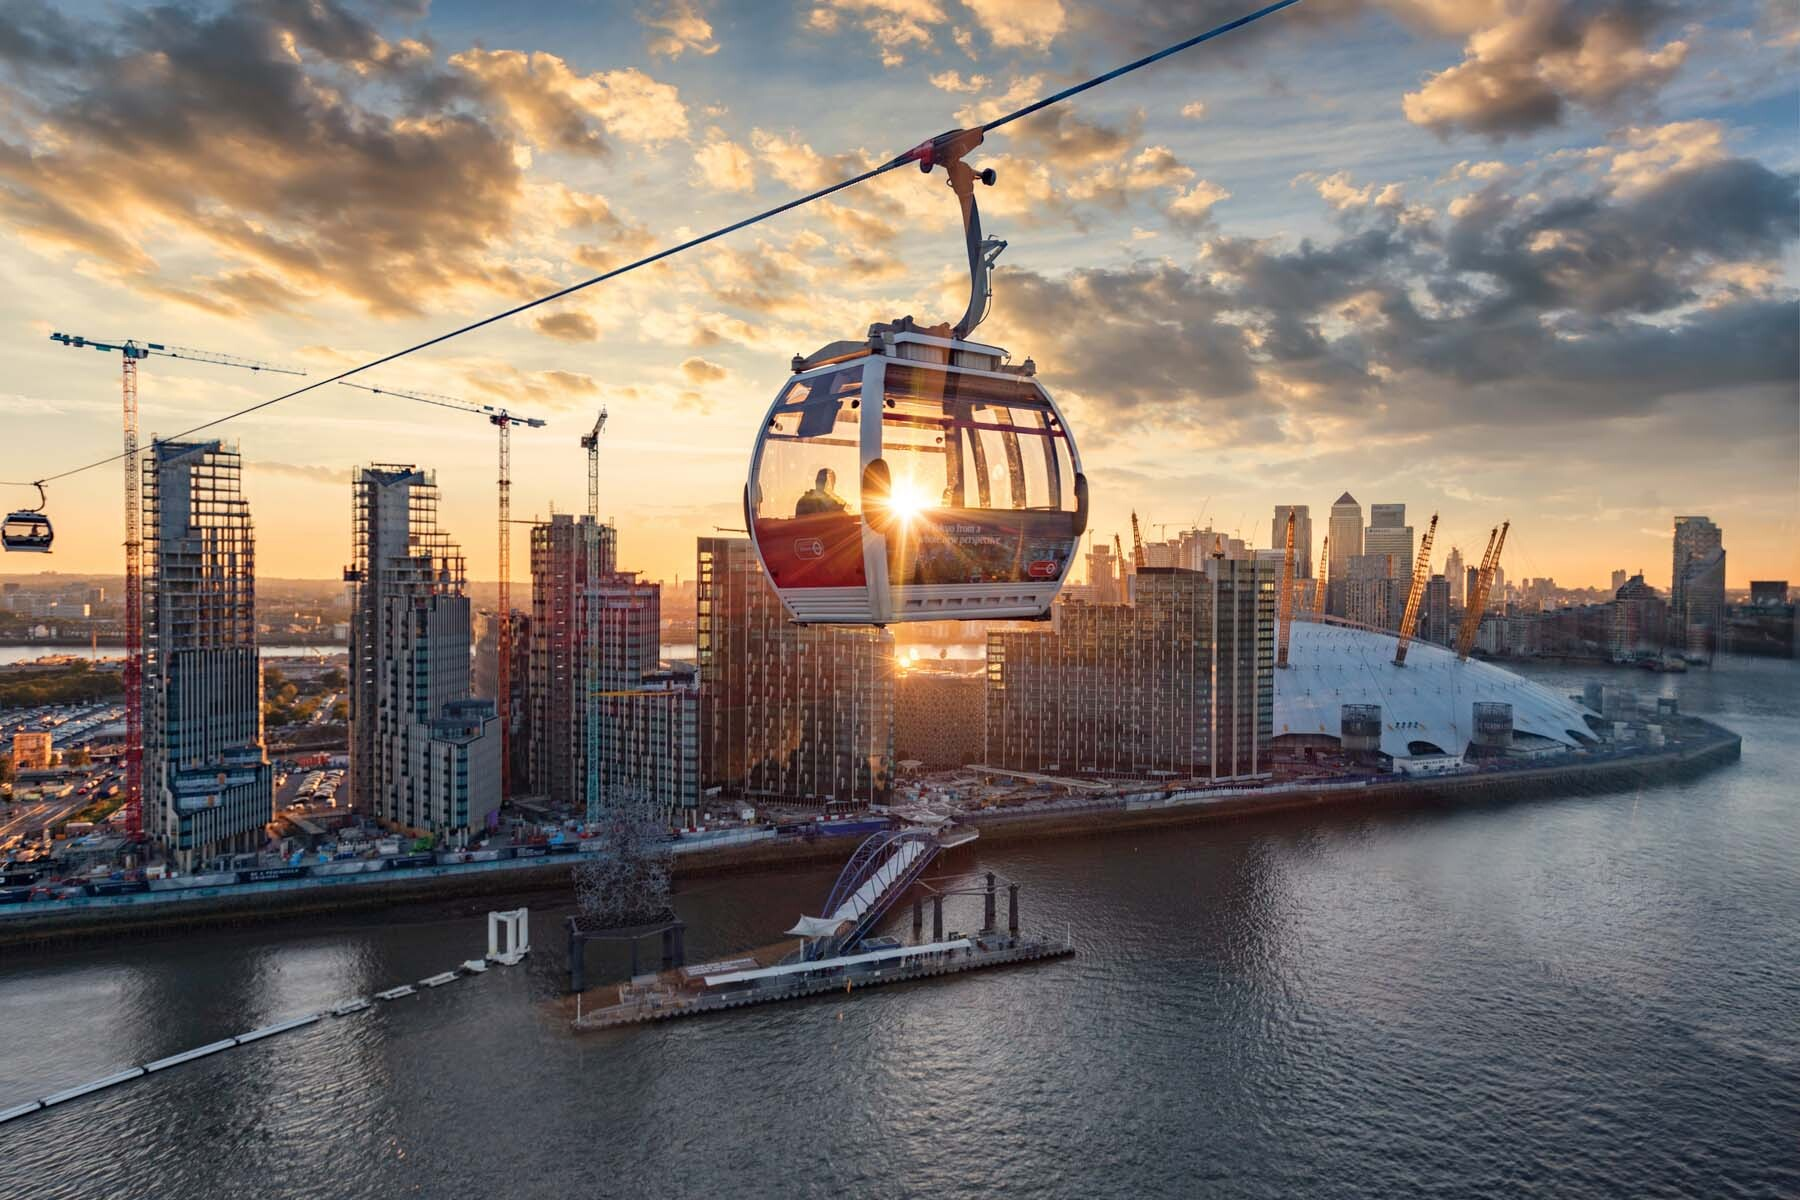 north greenwich best places to live in London